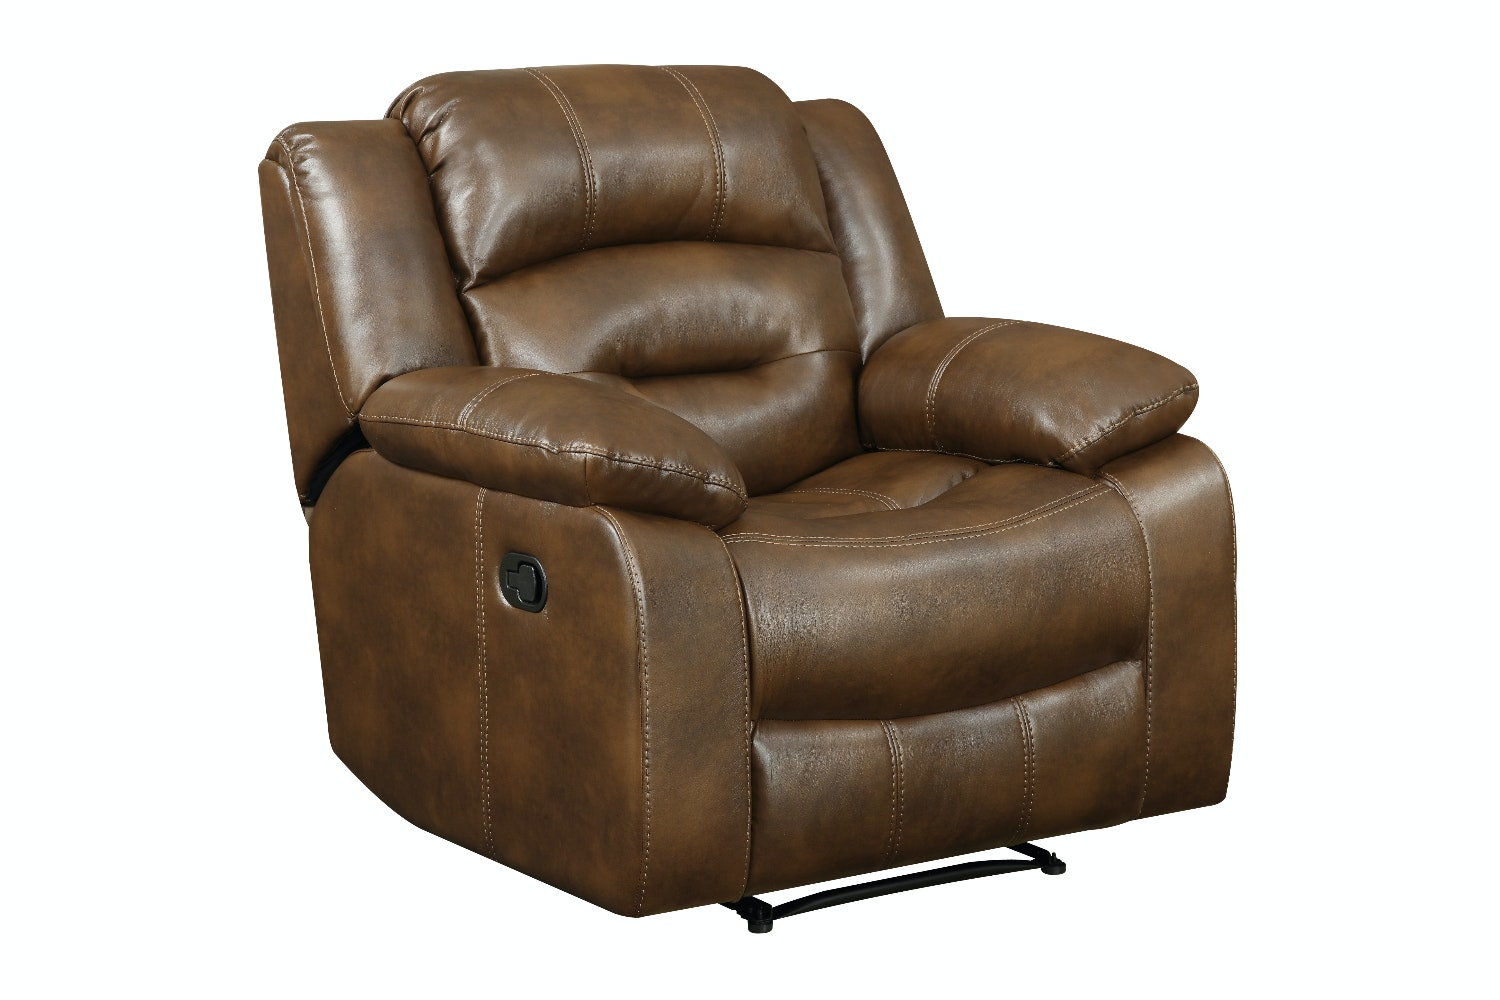 Hunter Recliner Chair | Tan